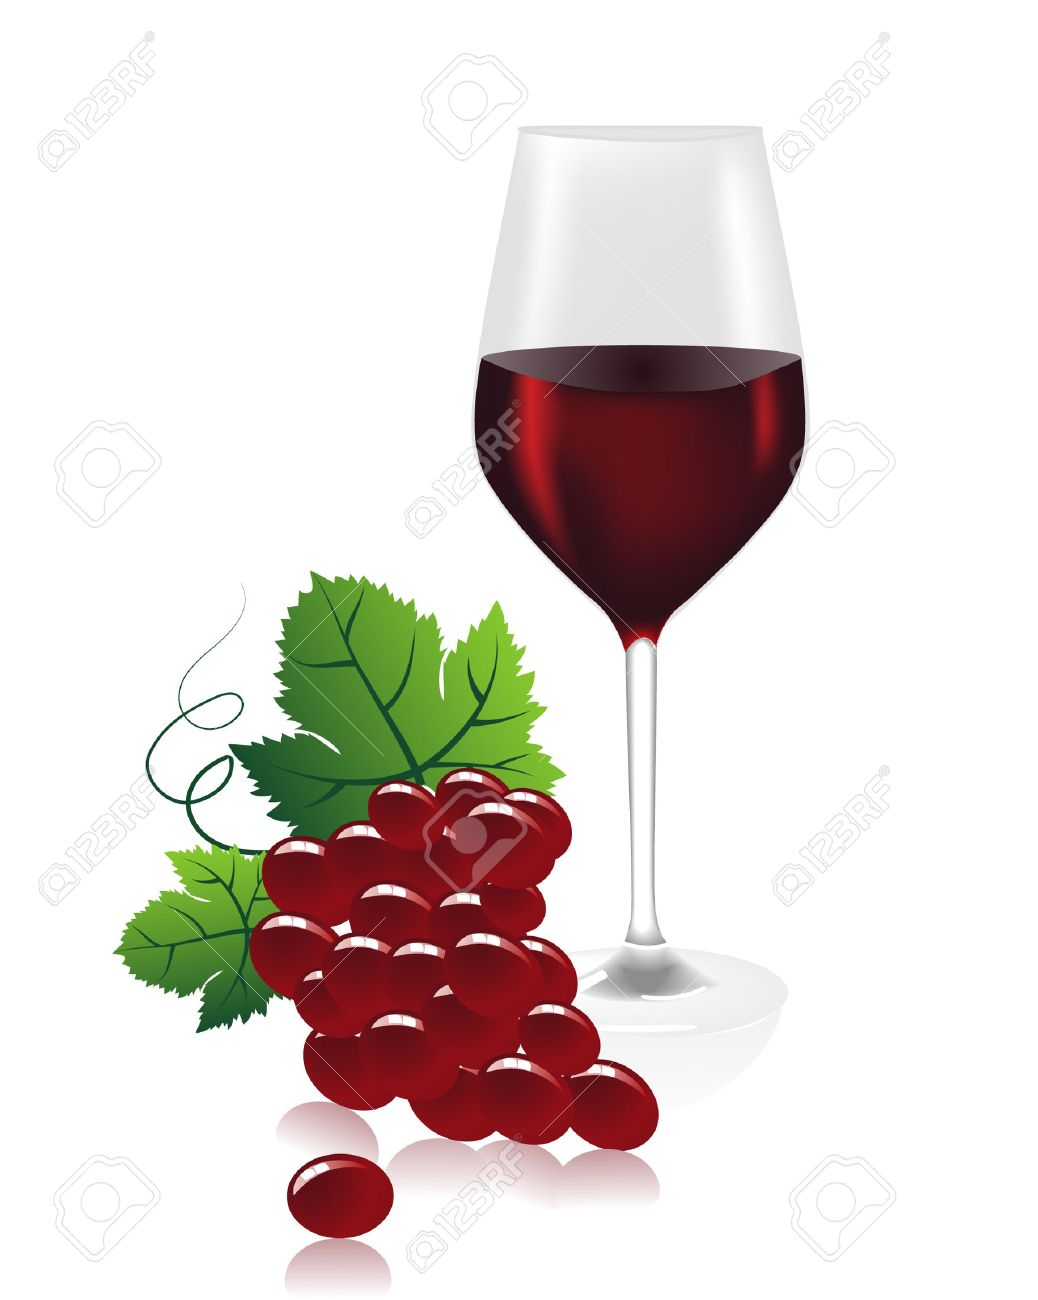 a wine glass with red wine and grapes.